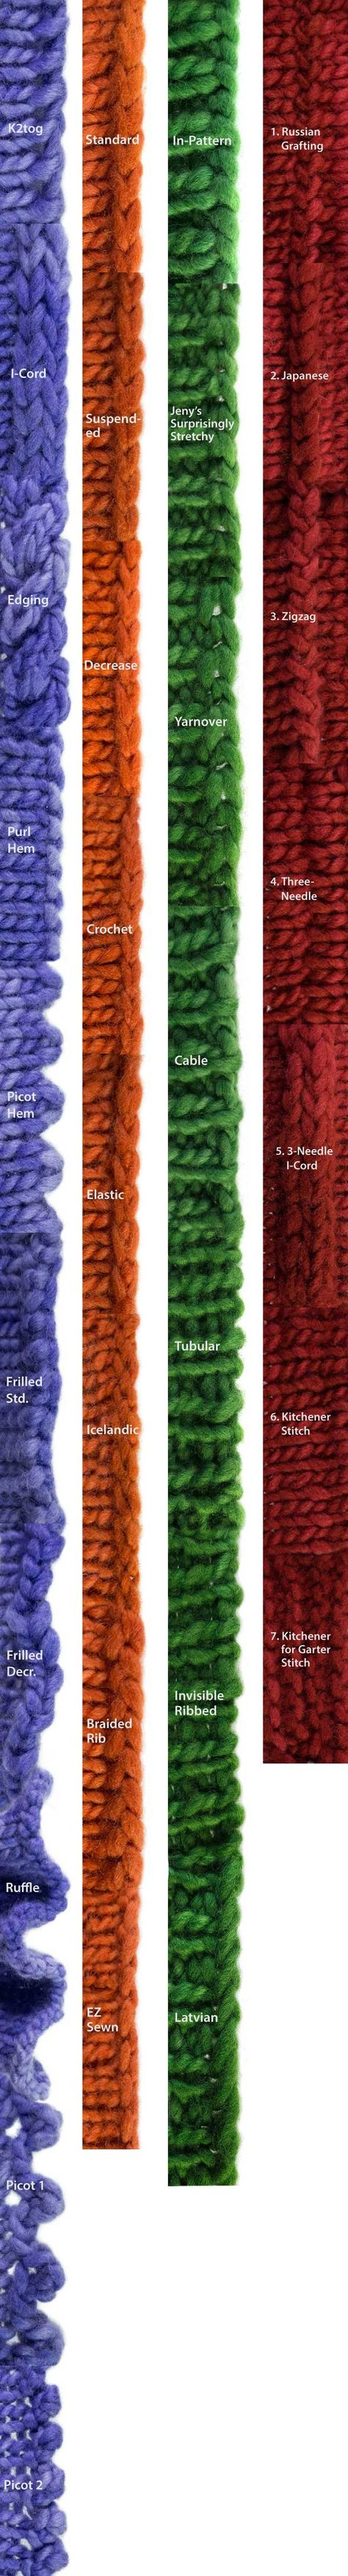 What All The Bind-Offs Look Like: A Bind-Off Extravaganza  http://knitfreedom.com/bind-offs/what-all-the-bind-offs-look-like